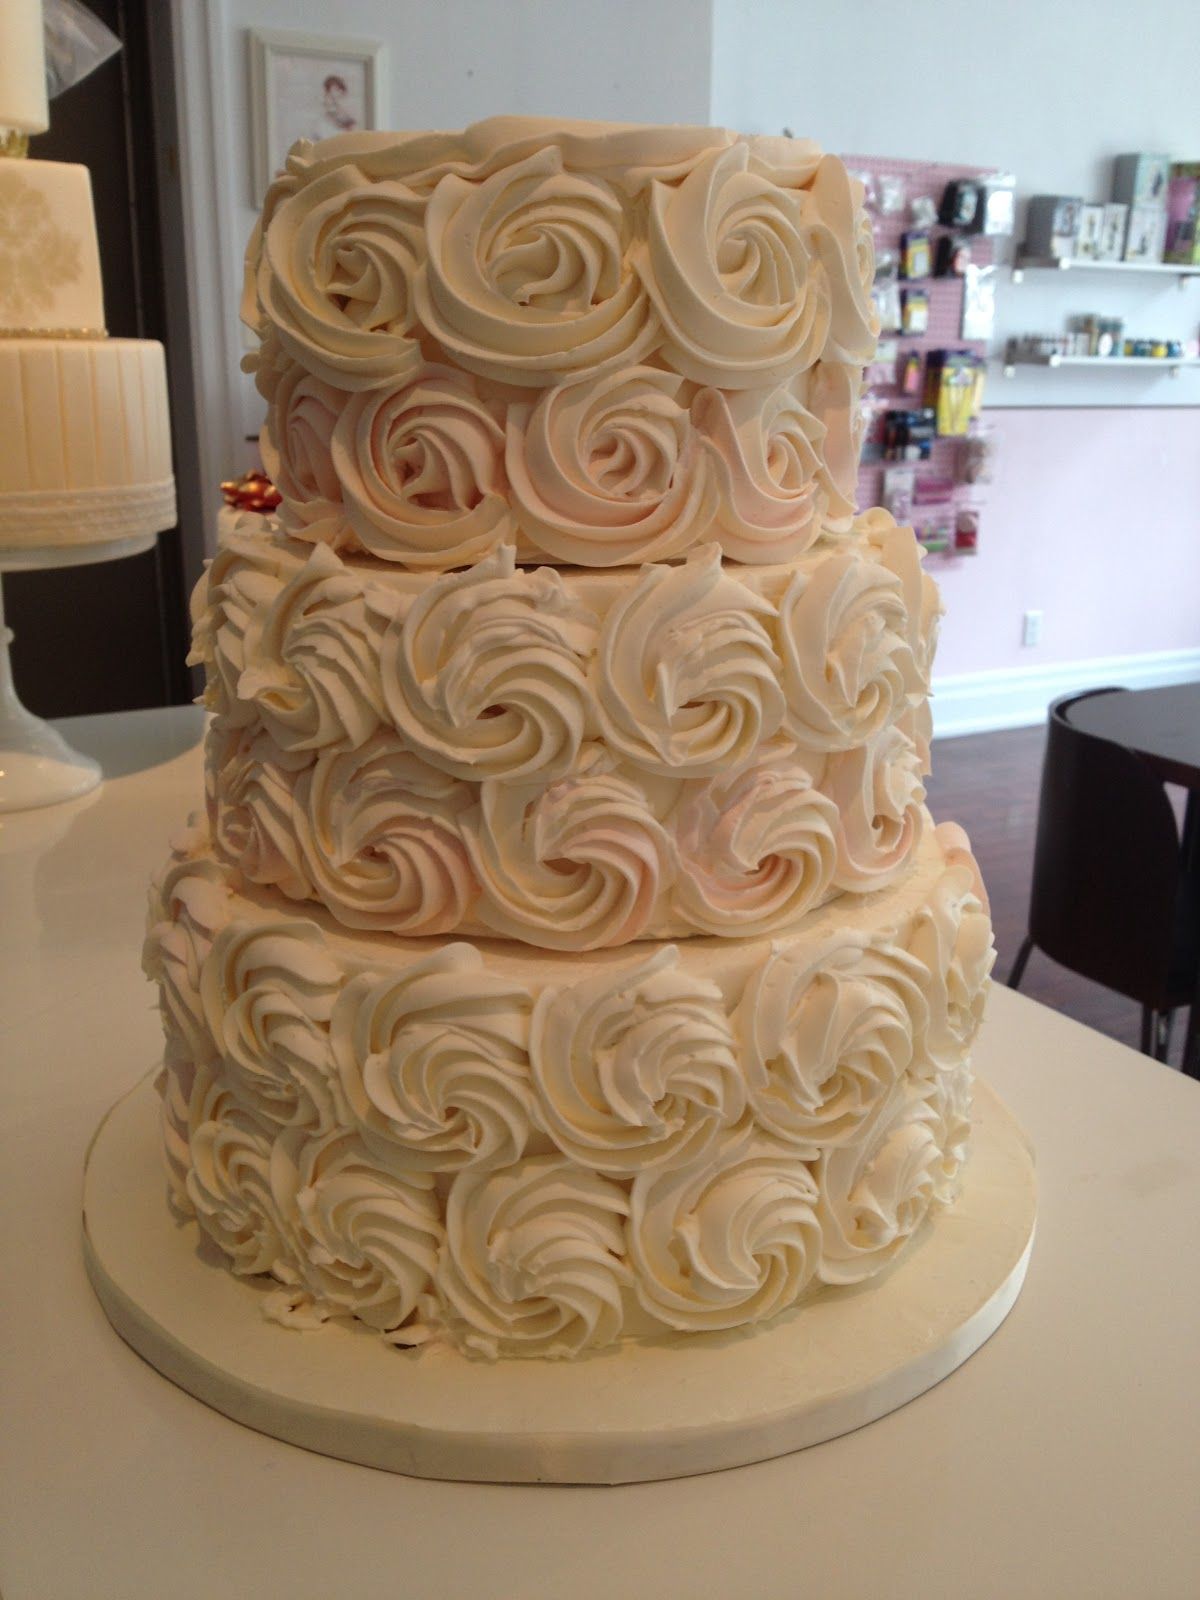 The Wedding Cake Shoppe Buttercream Cakes Have made a